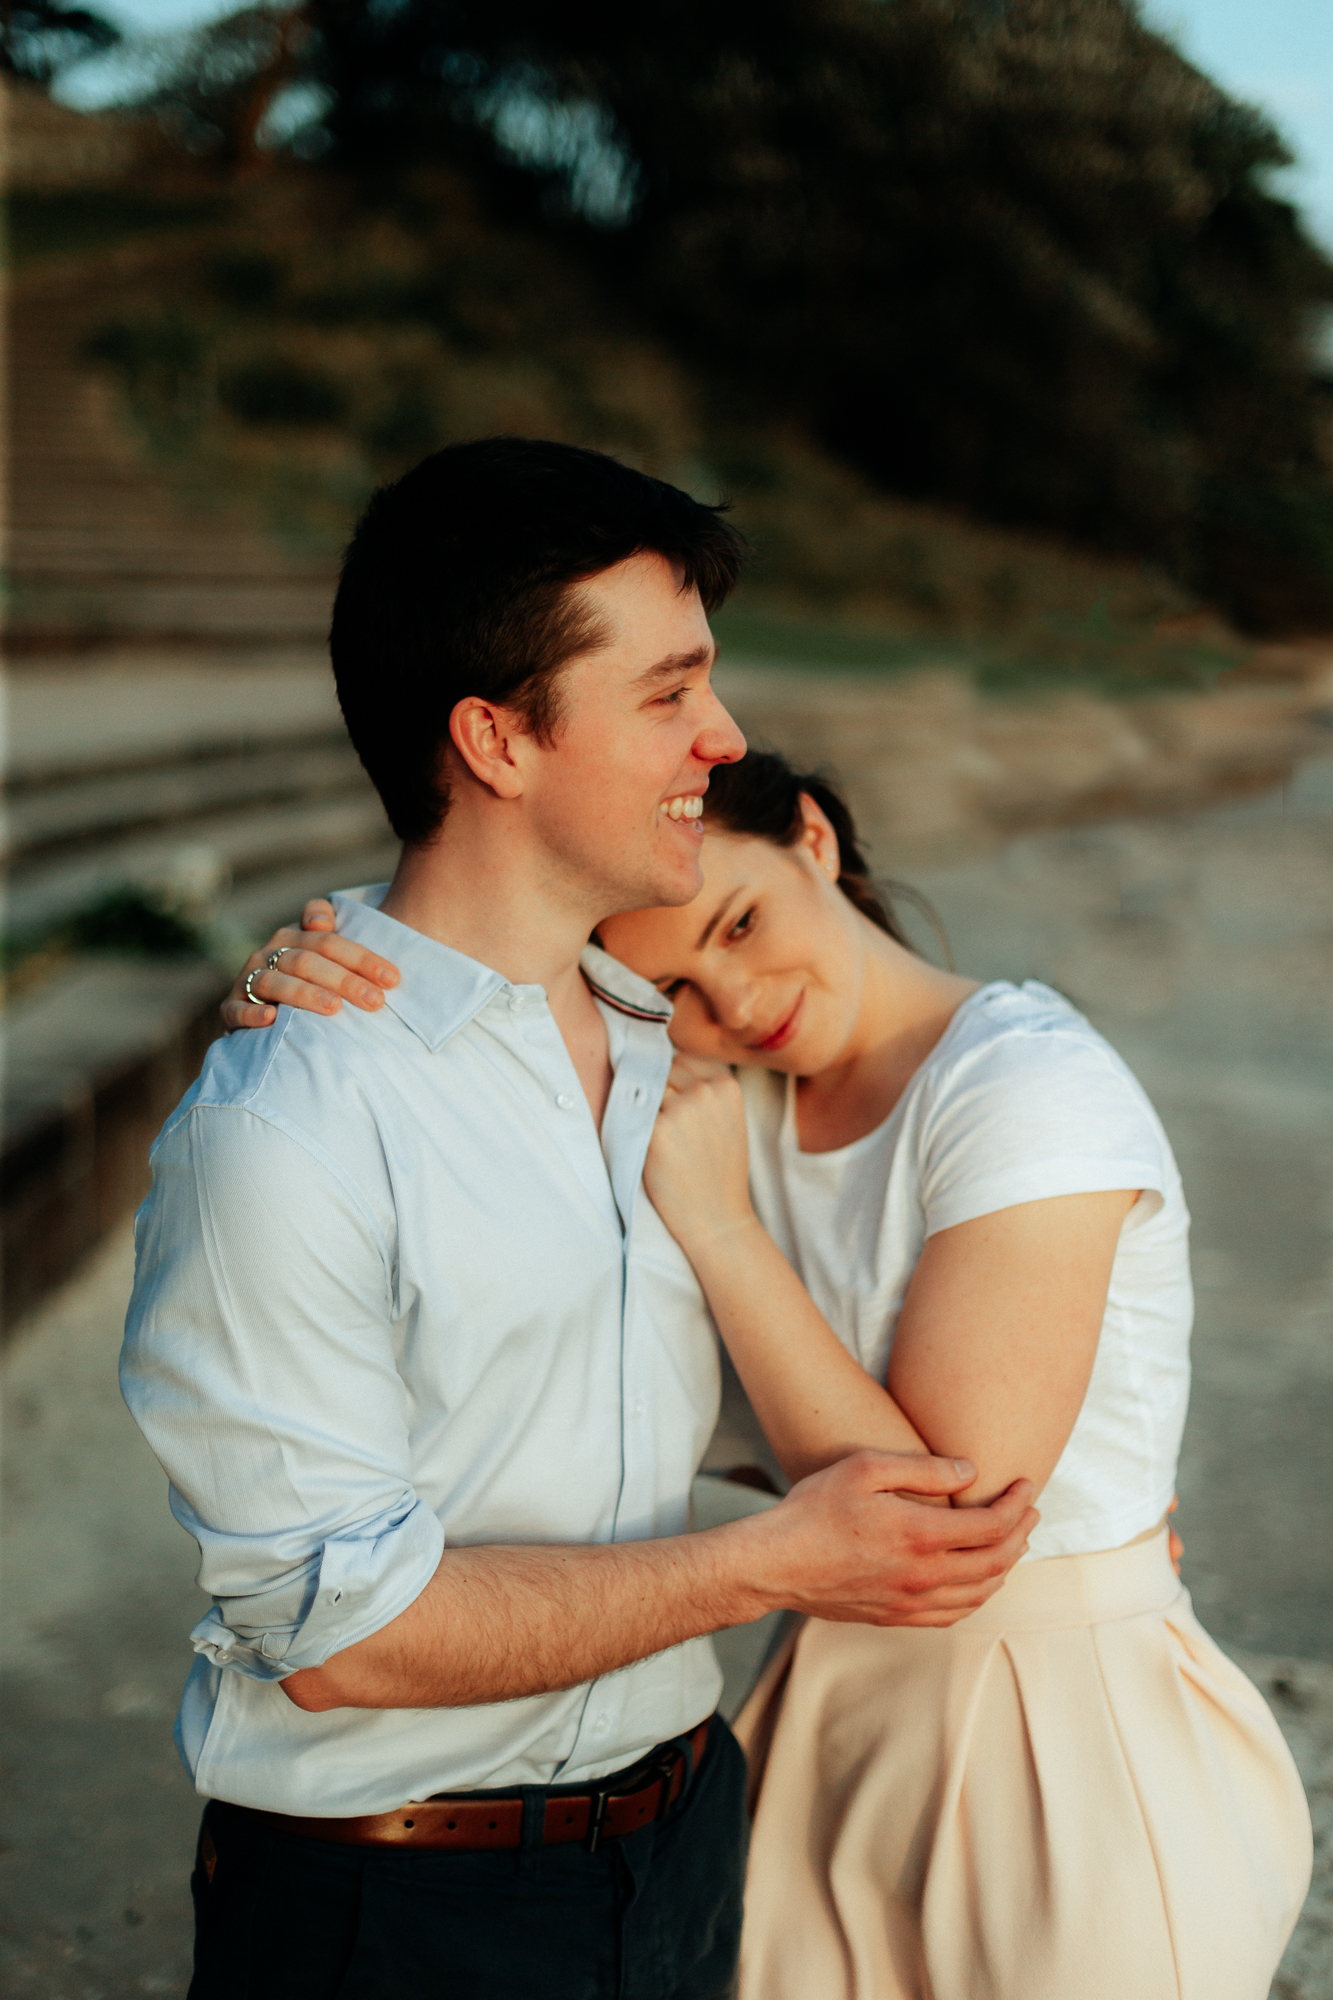 Amanzi and Steven_Engagement_Sydney_Holly Medway Photography-61.JPG